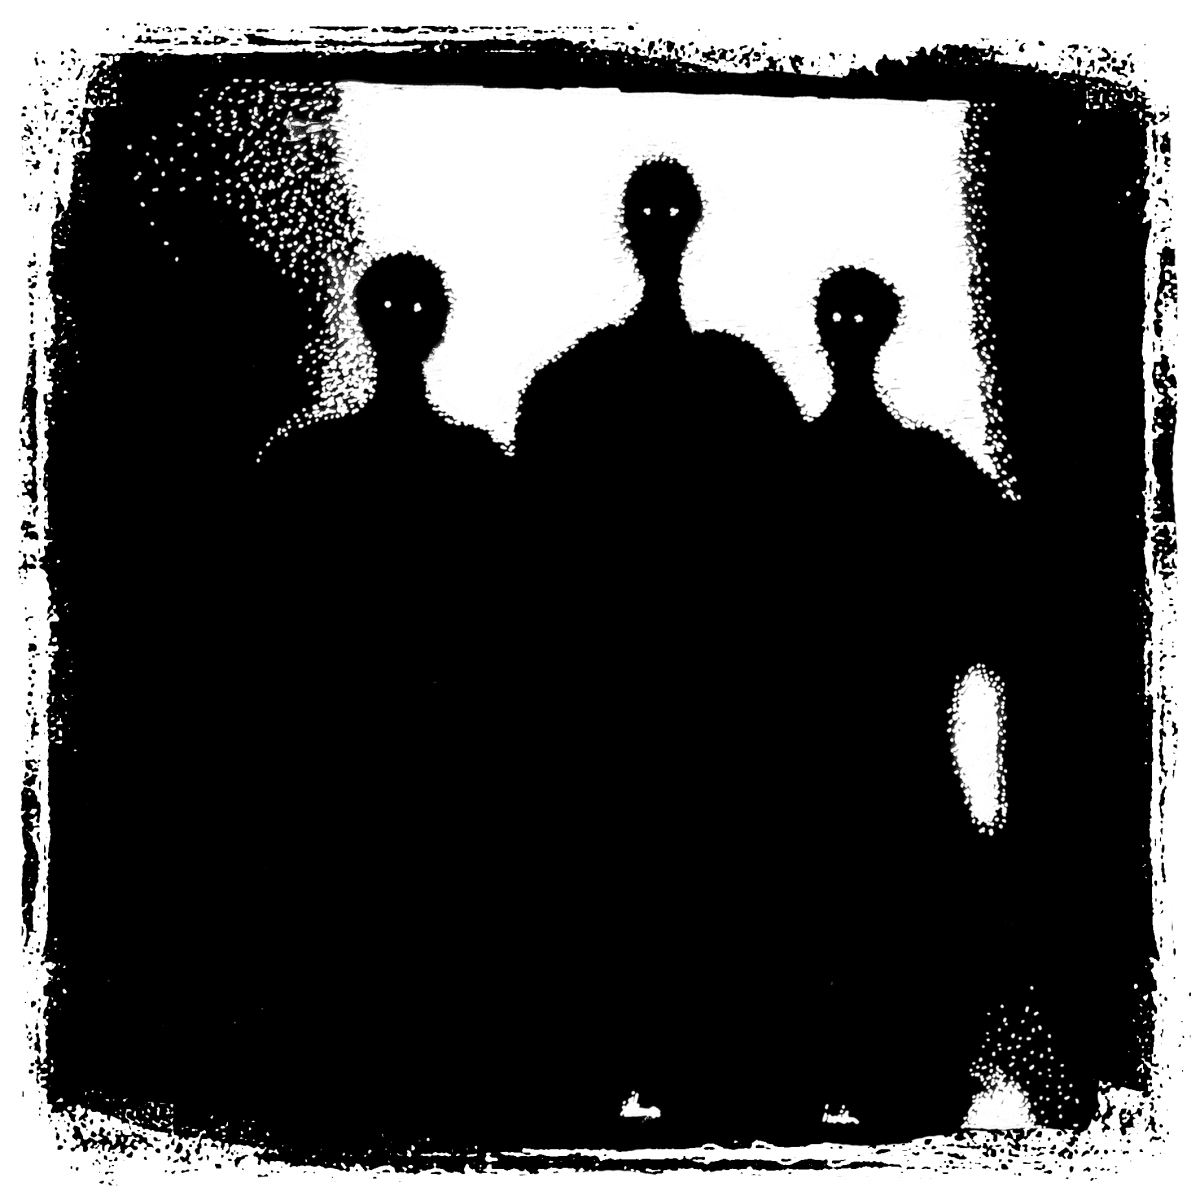 The Shadow People by Ayd Instone